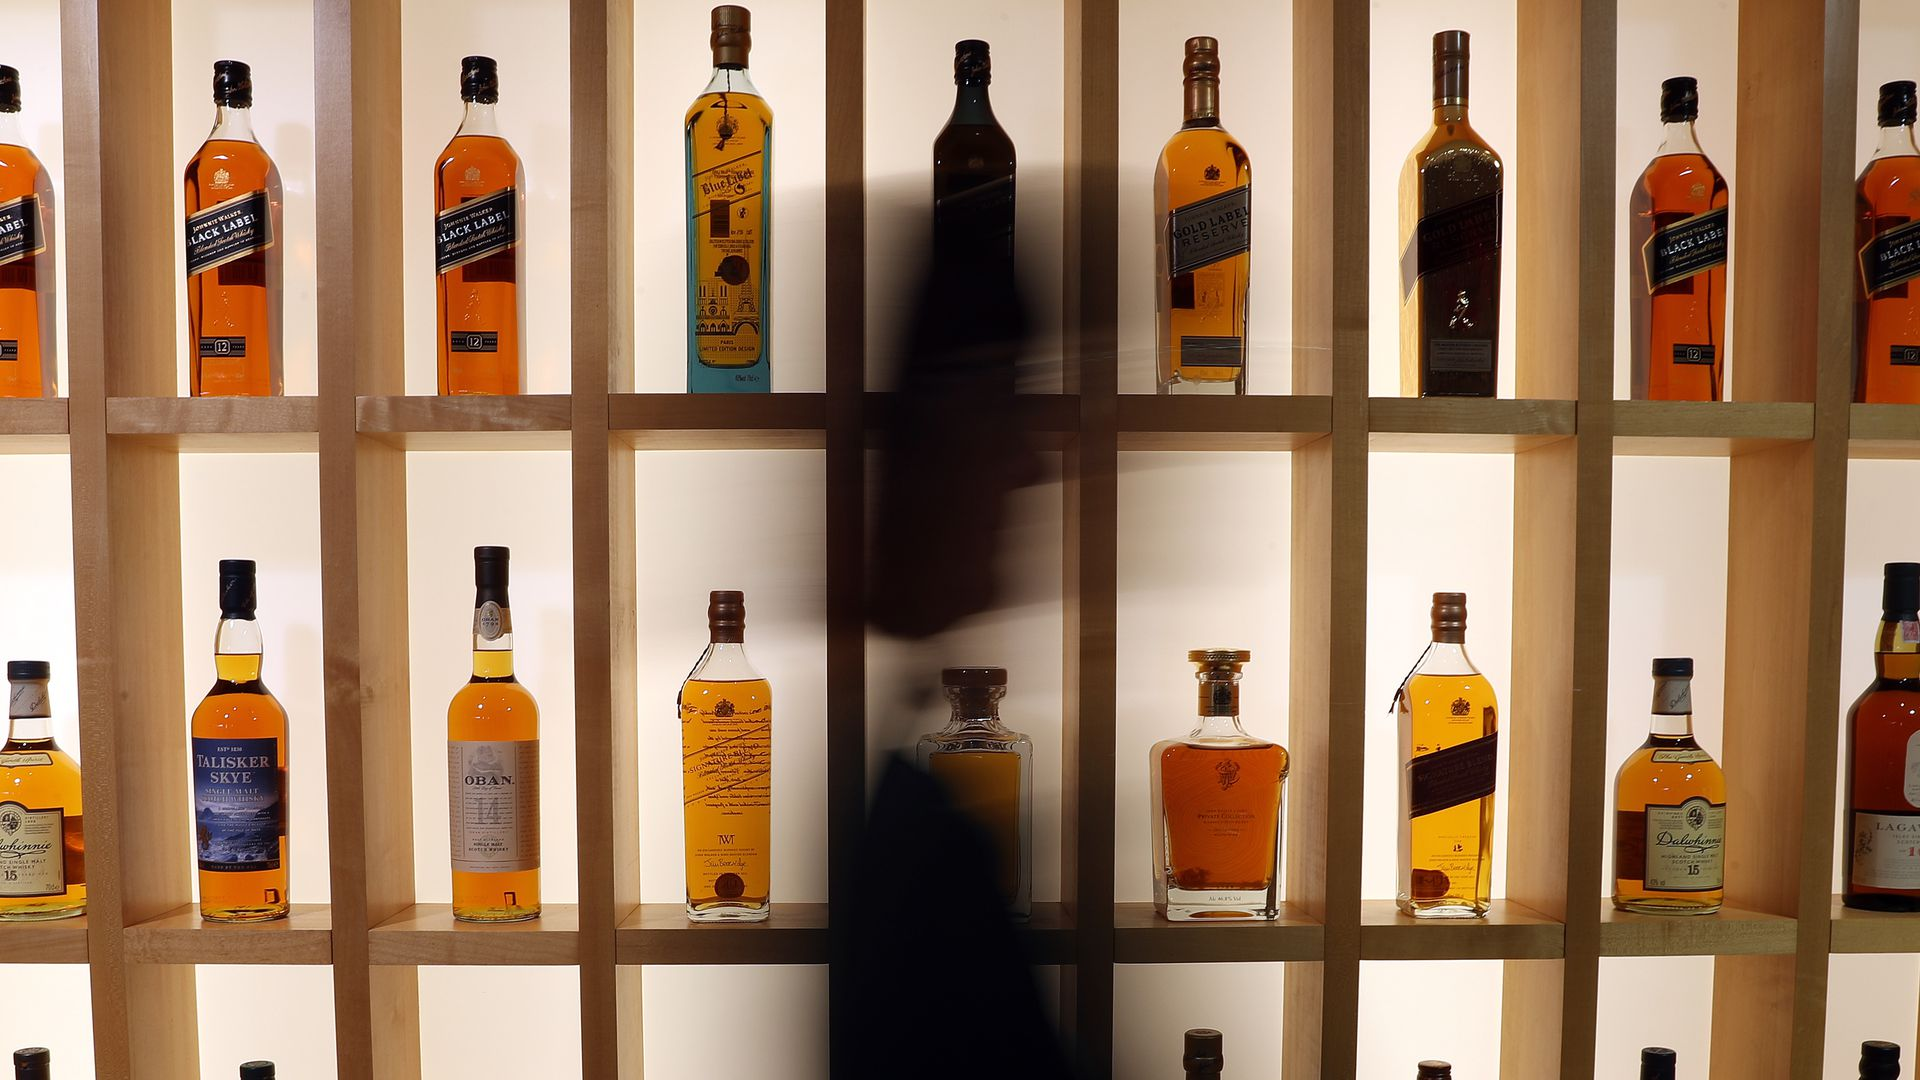 A wall of whiskey bottles